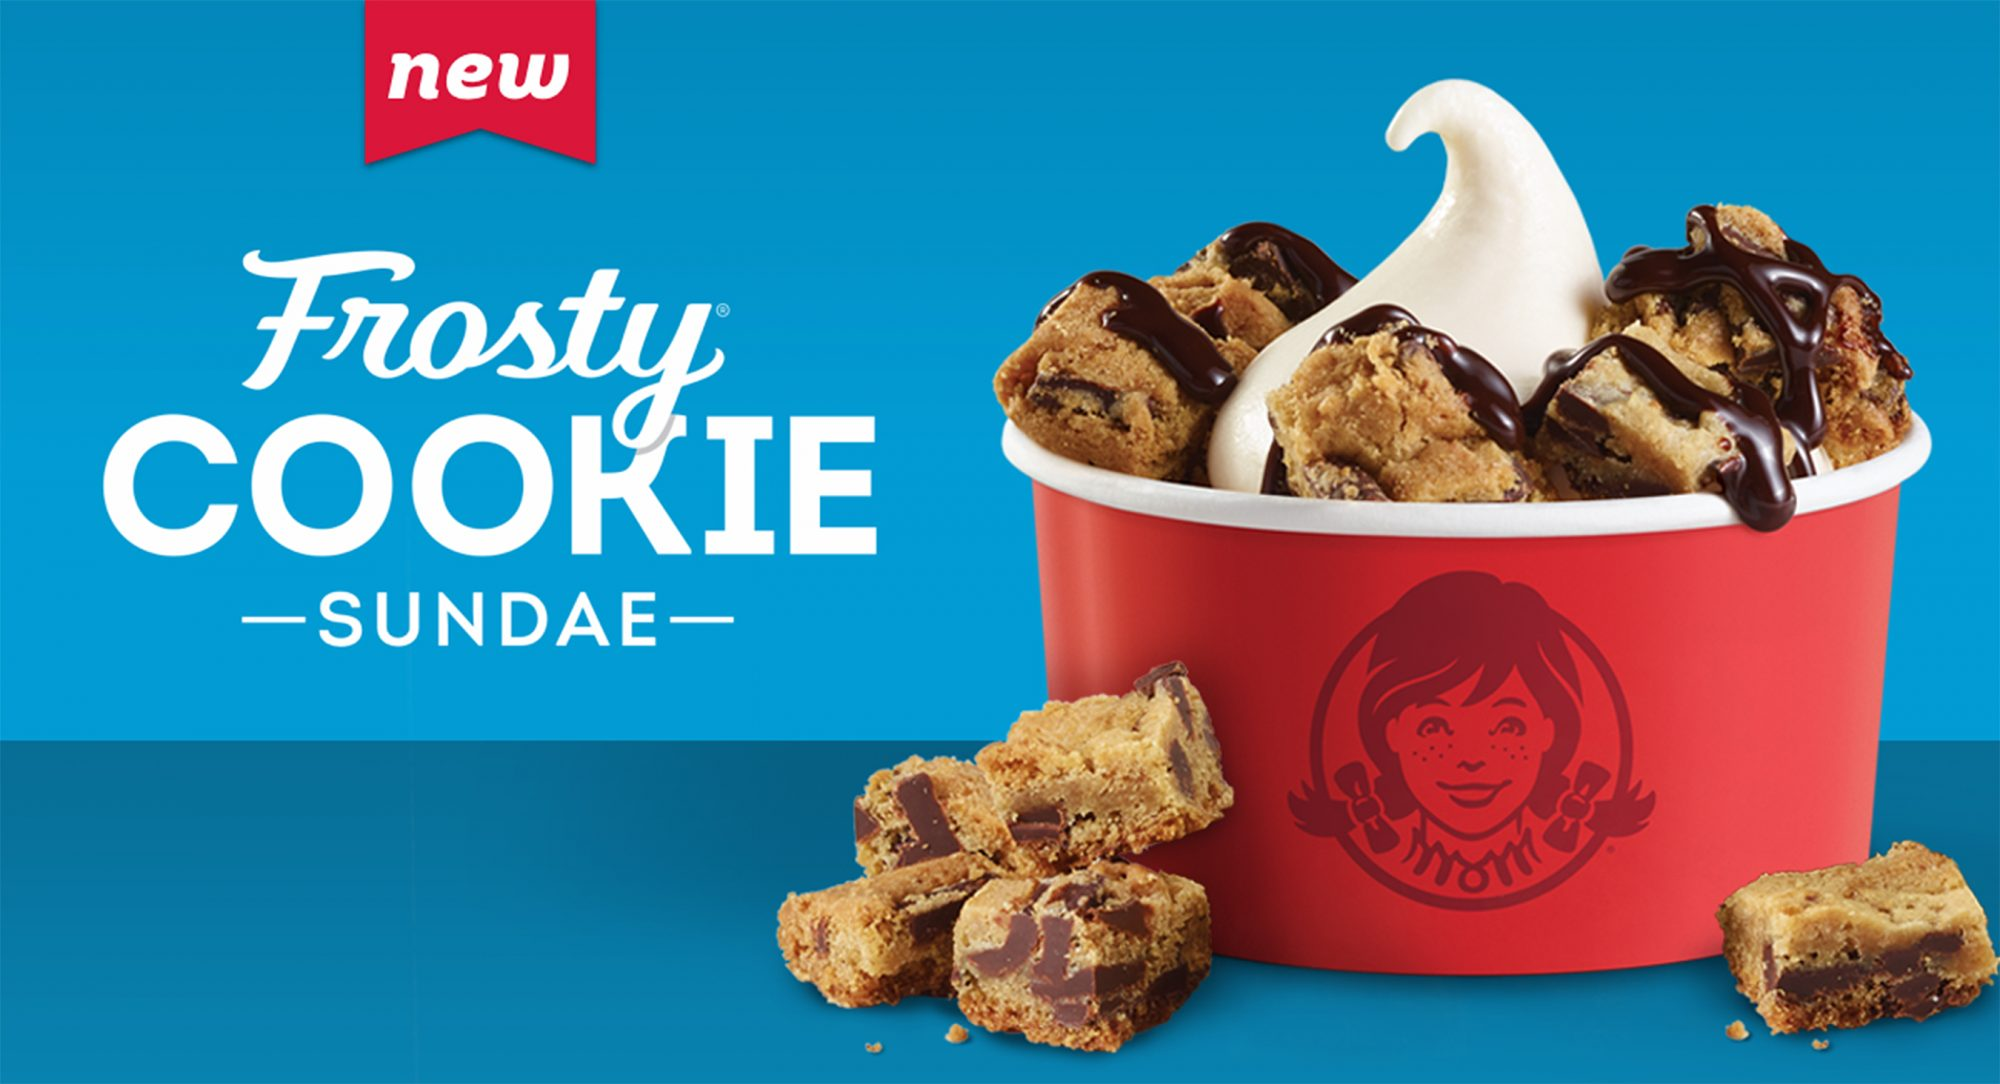 Wendy's Introduces New Frosty Cookie Sundae